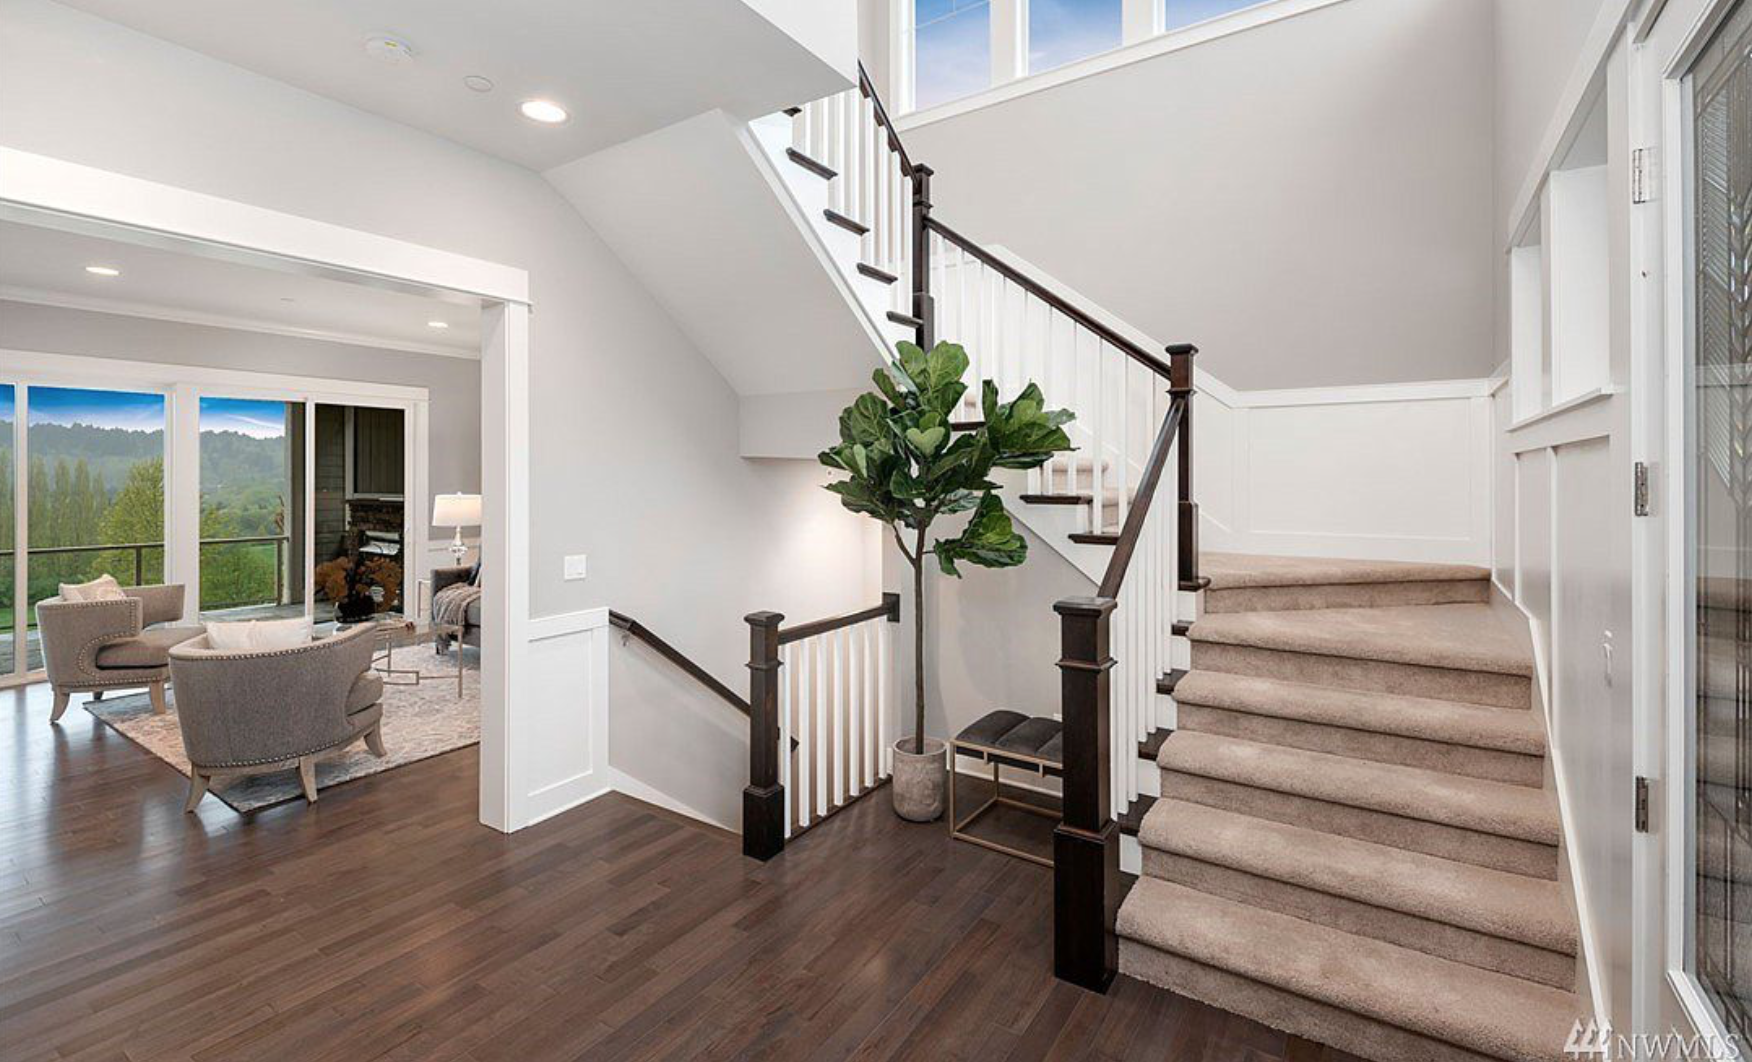 Beautiful entry way featuring modern design and welcoming views!